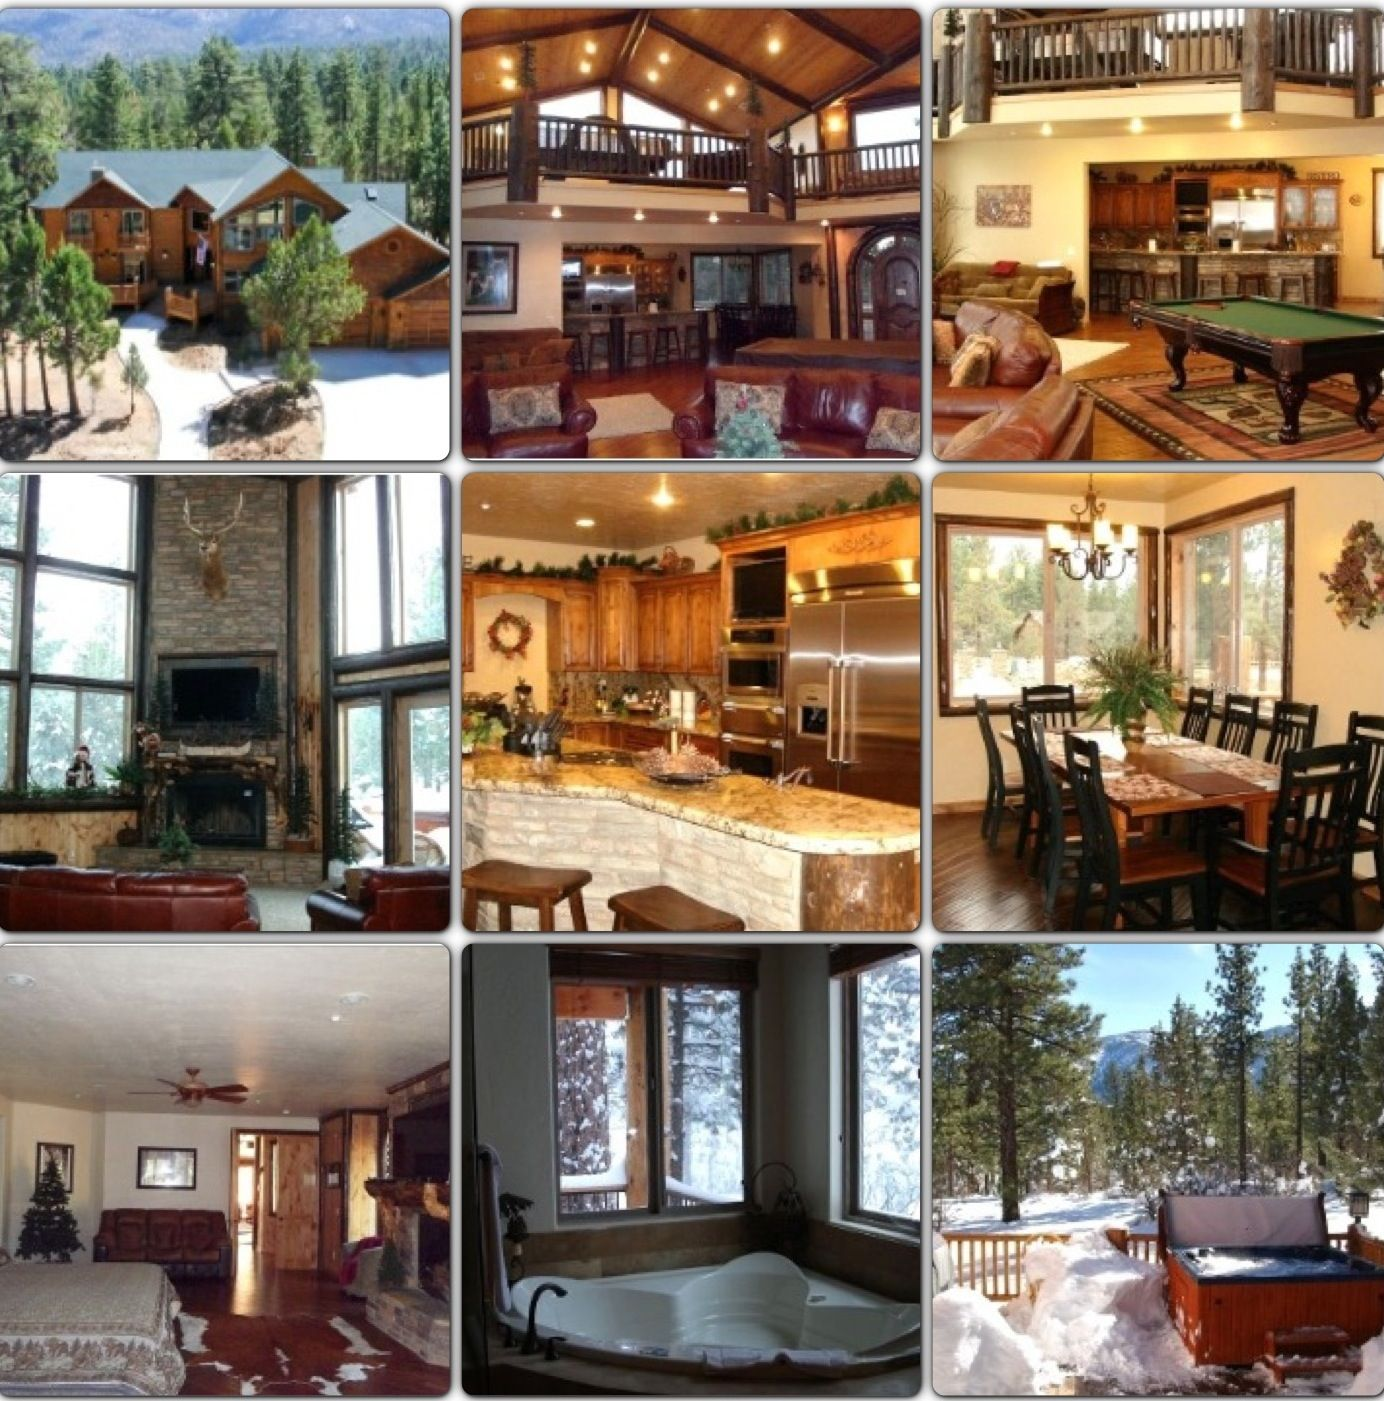 cabins rentals friendly pet log wv big lake bear sale california for